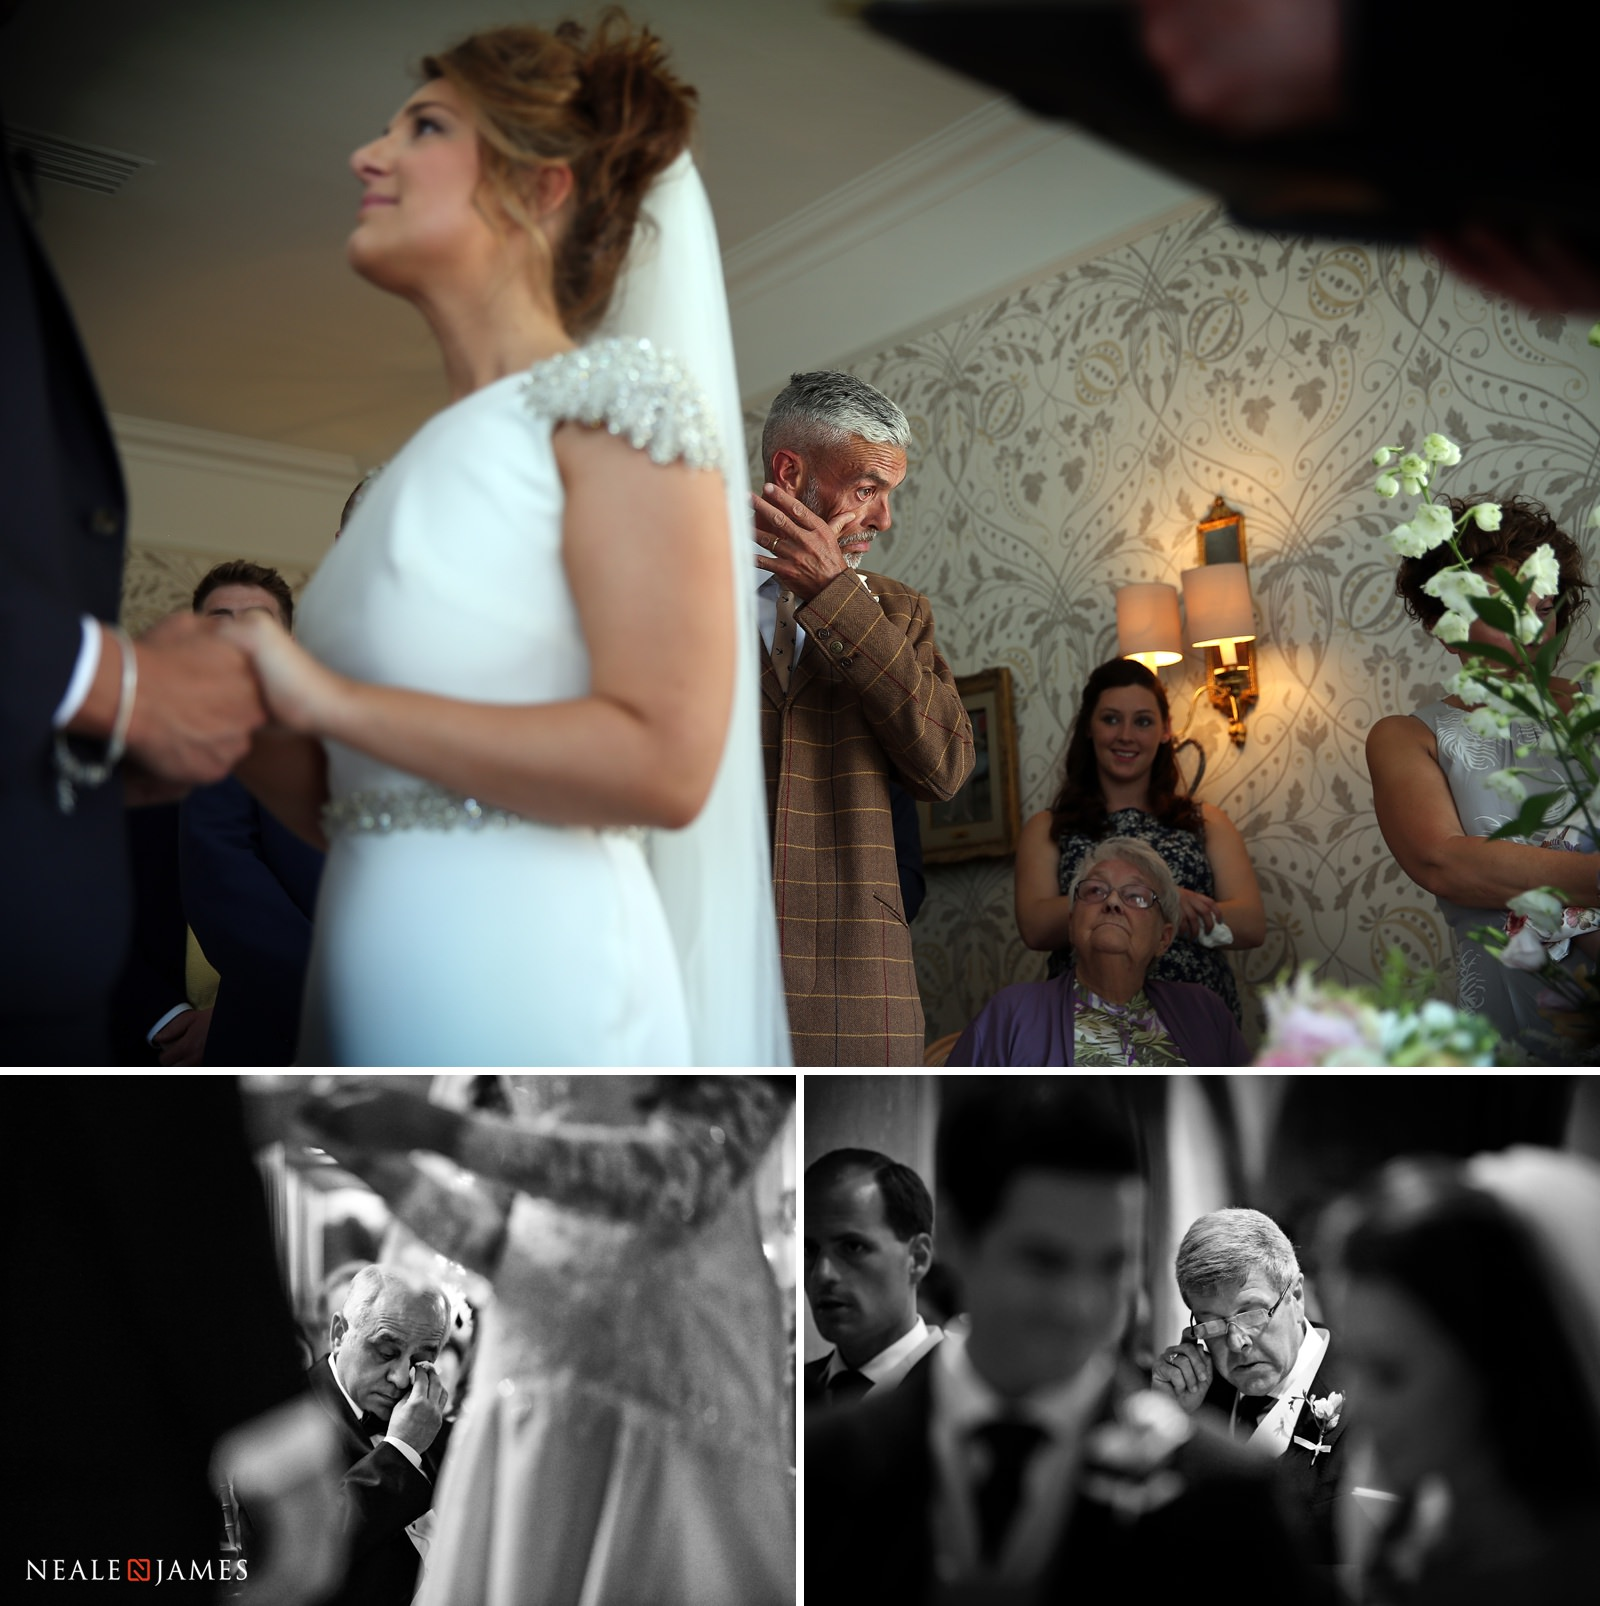 Colour photo of fathers of brides and grooms getting emotional at a wedding ceremony